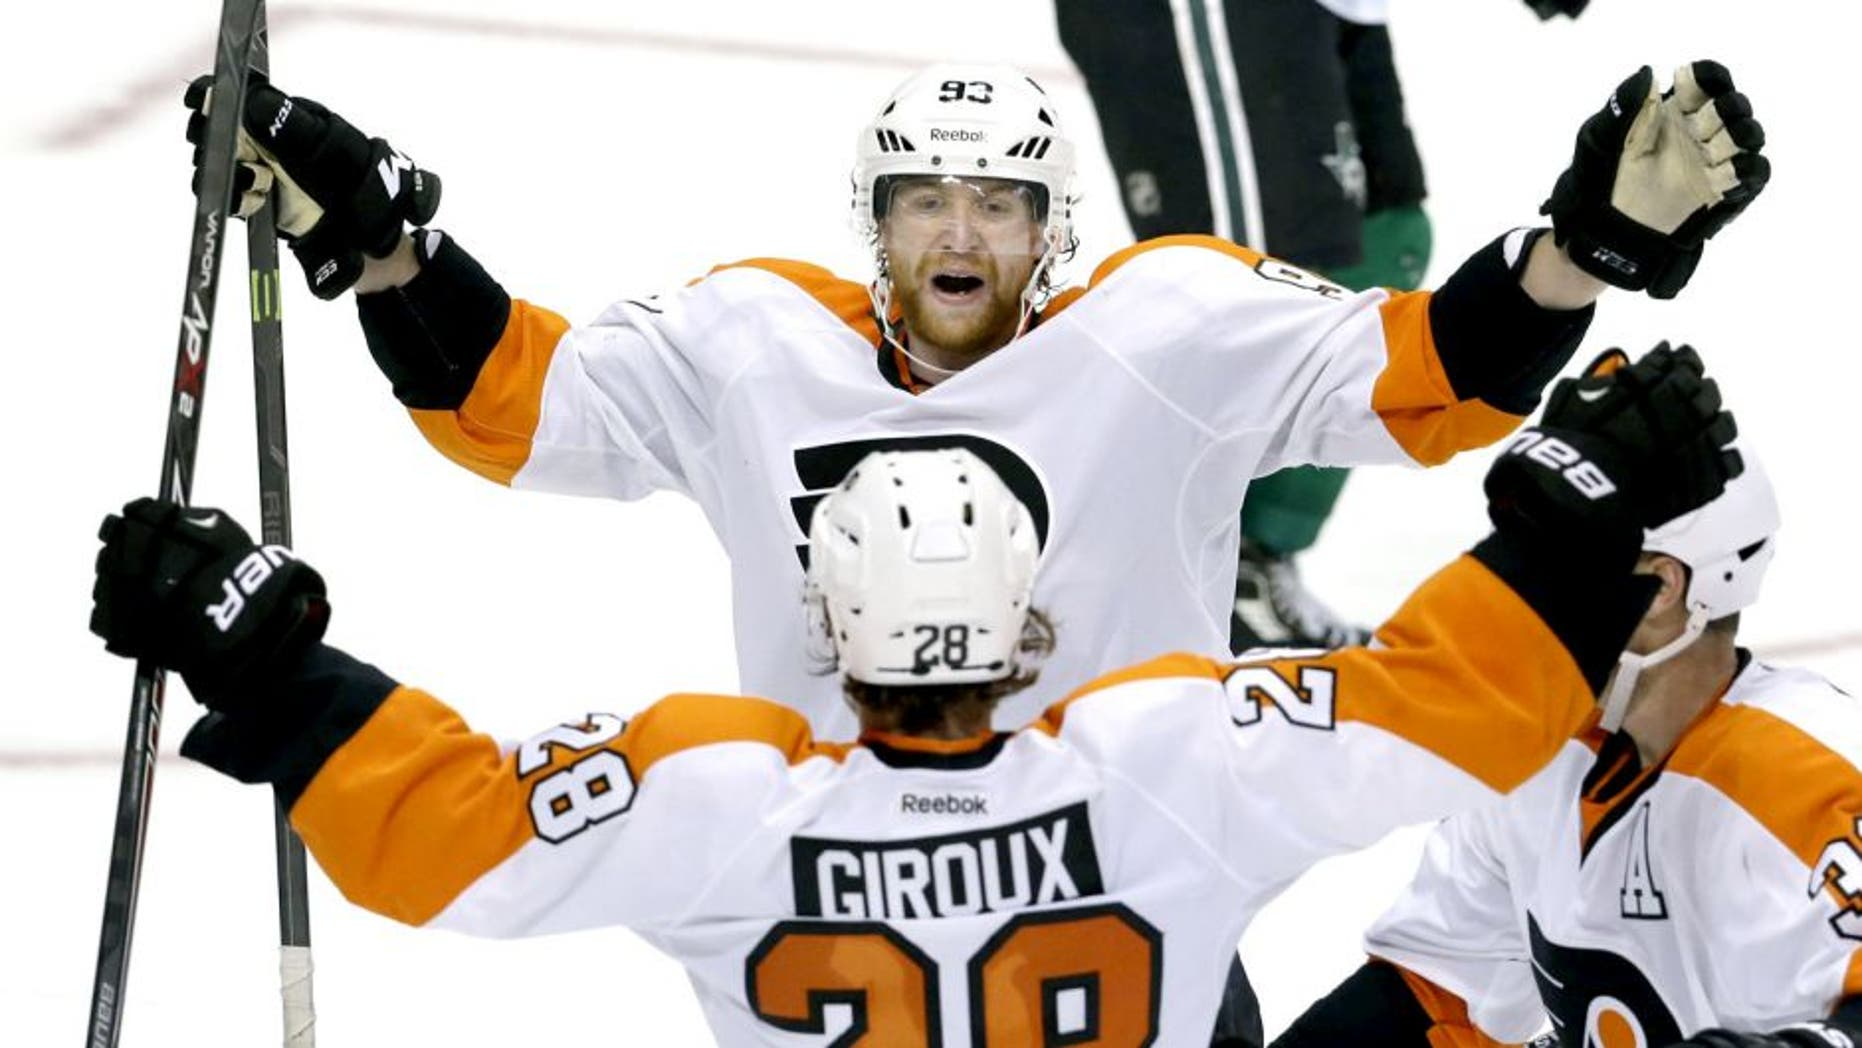 Philadelphia Flyers right wing Jakub Voracek (93) celebrates the game winning goal with teammates center Claude Giroux (28) and defenseman Mark Streit (32) during overtime of an NHL hockey game against the Dallas Stars Saturday, Oct. 18, 2014, in Dallas. The Flyers won 6-5. (AP Photo/LM Otero)